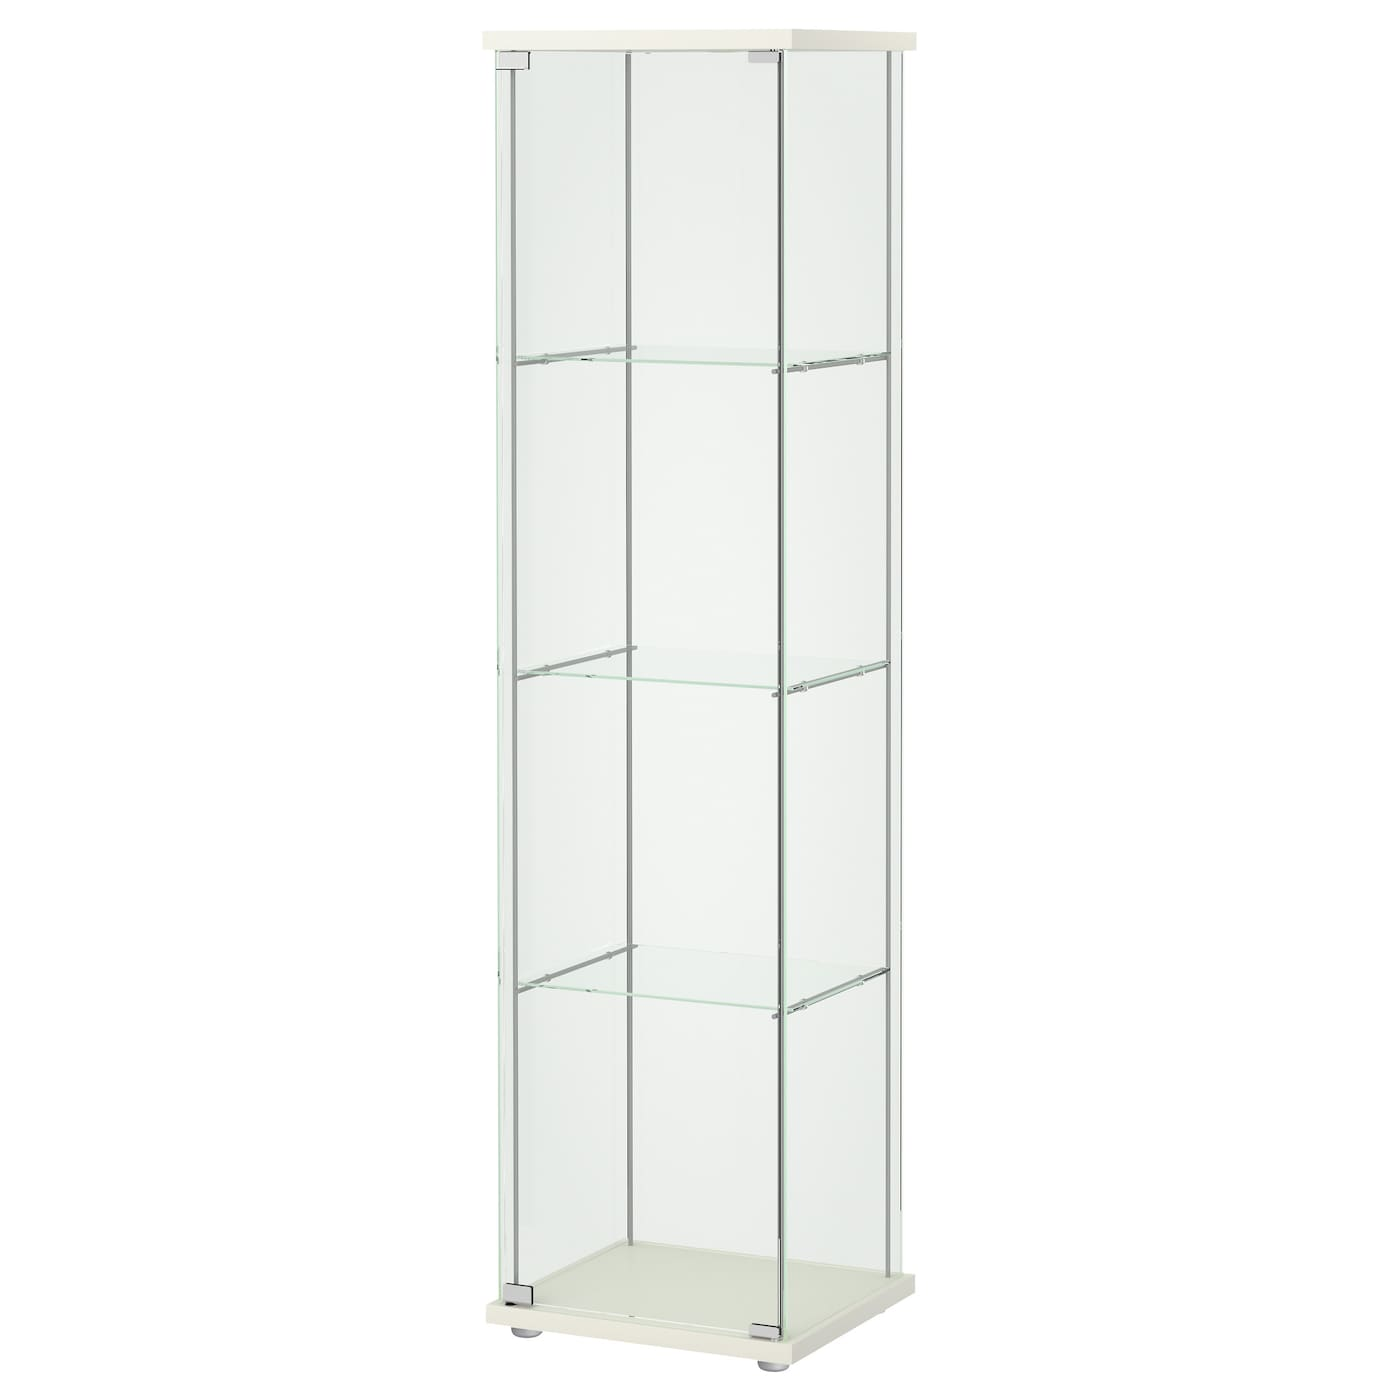 detolf glass door cabinet white 43 x 163 cm ikea. Black Bedroom Furniture Sets. Home Design Ideas